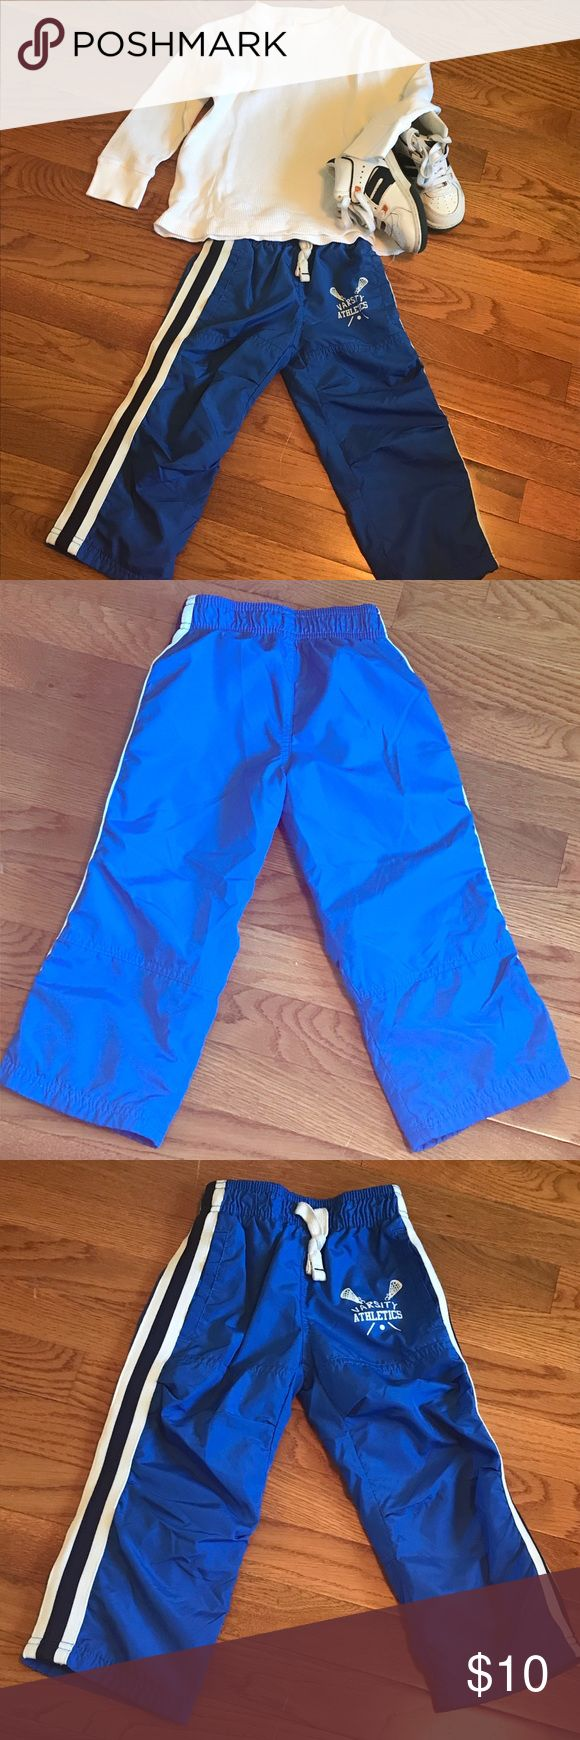 Carters Blue Athletic Pants EUC- Carters size 2T Blue Athletic Pants Non-adjustable waist No holes/stains Non-smoking, pet-friendly home🐶🐱🐱 All used clothing washed prior to shipping Carter's Bottoms Sweatpants & Joggers